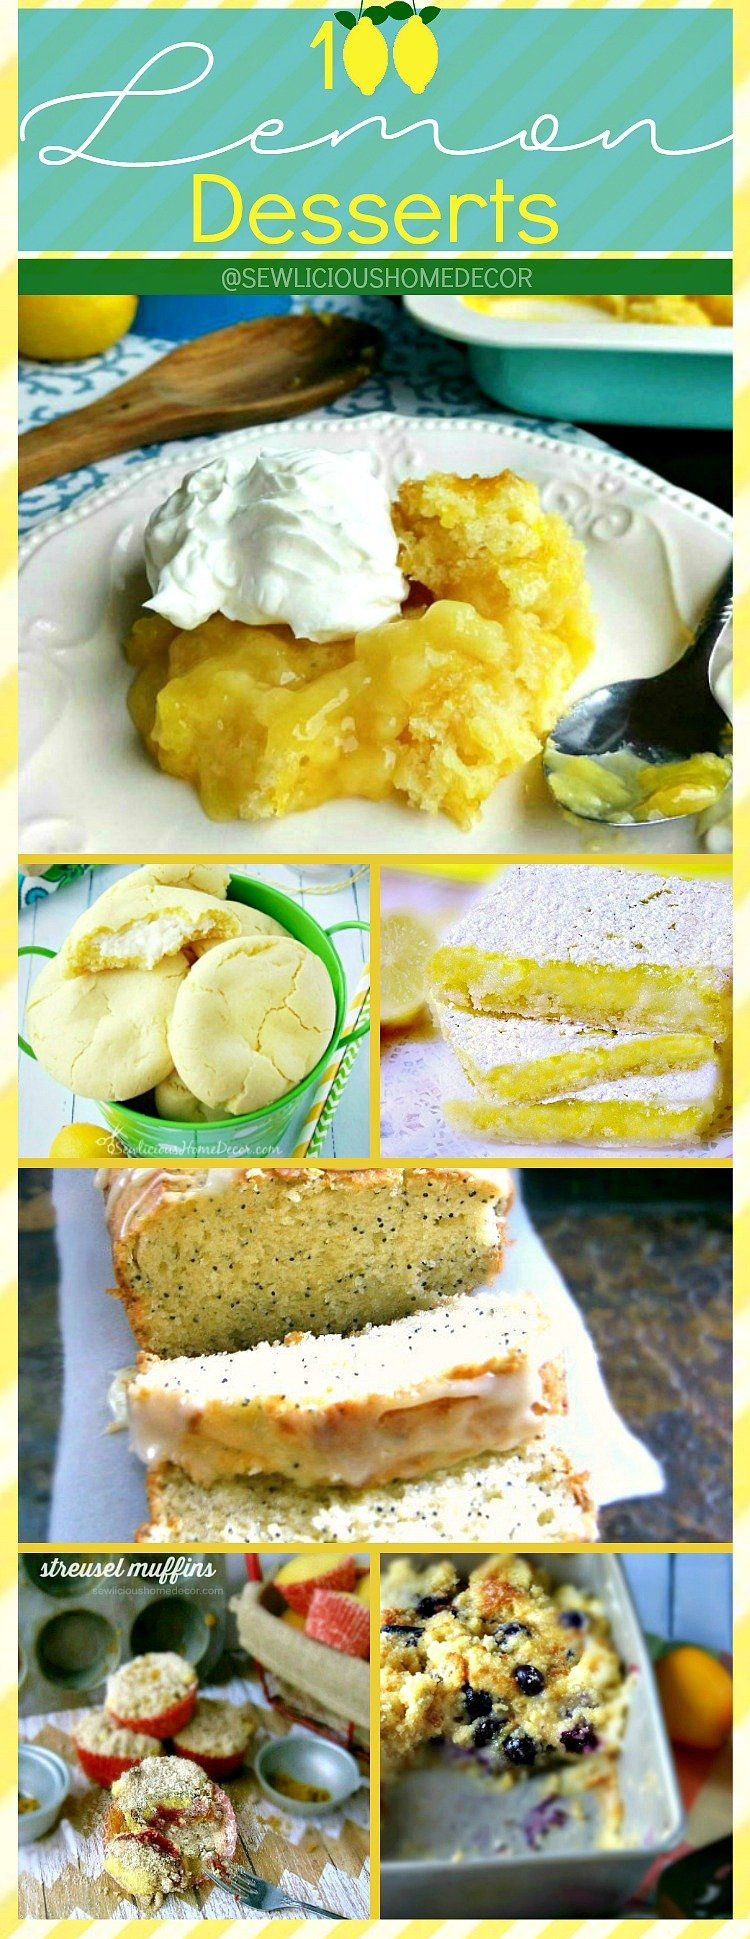 100 Lemon Dessert Recipes at sewlicioushomedecor.com